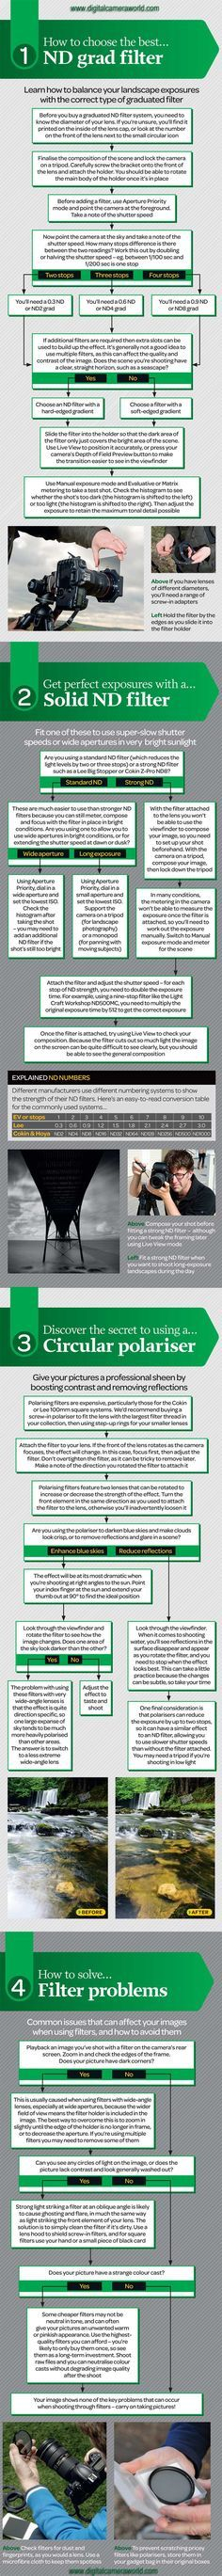 How to use and choose filters